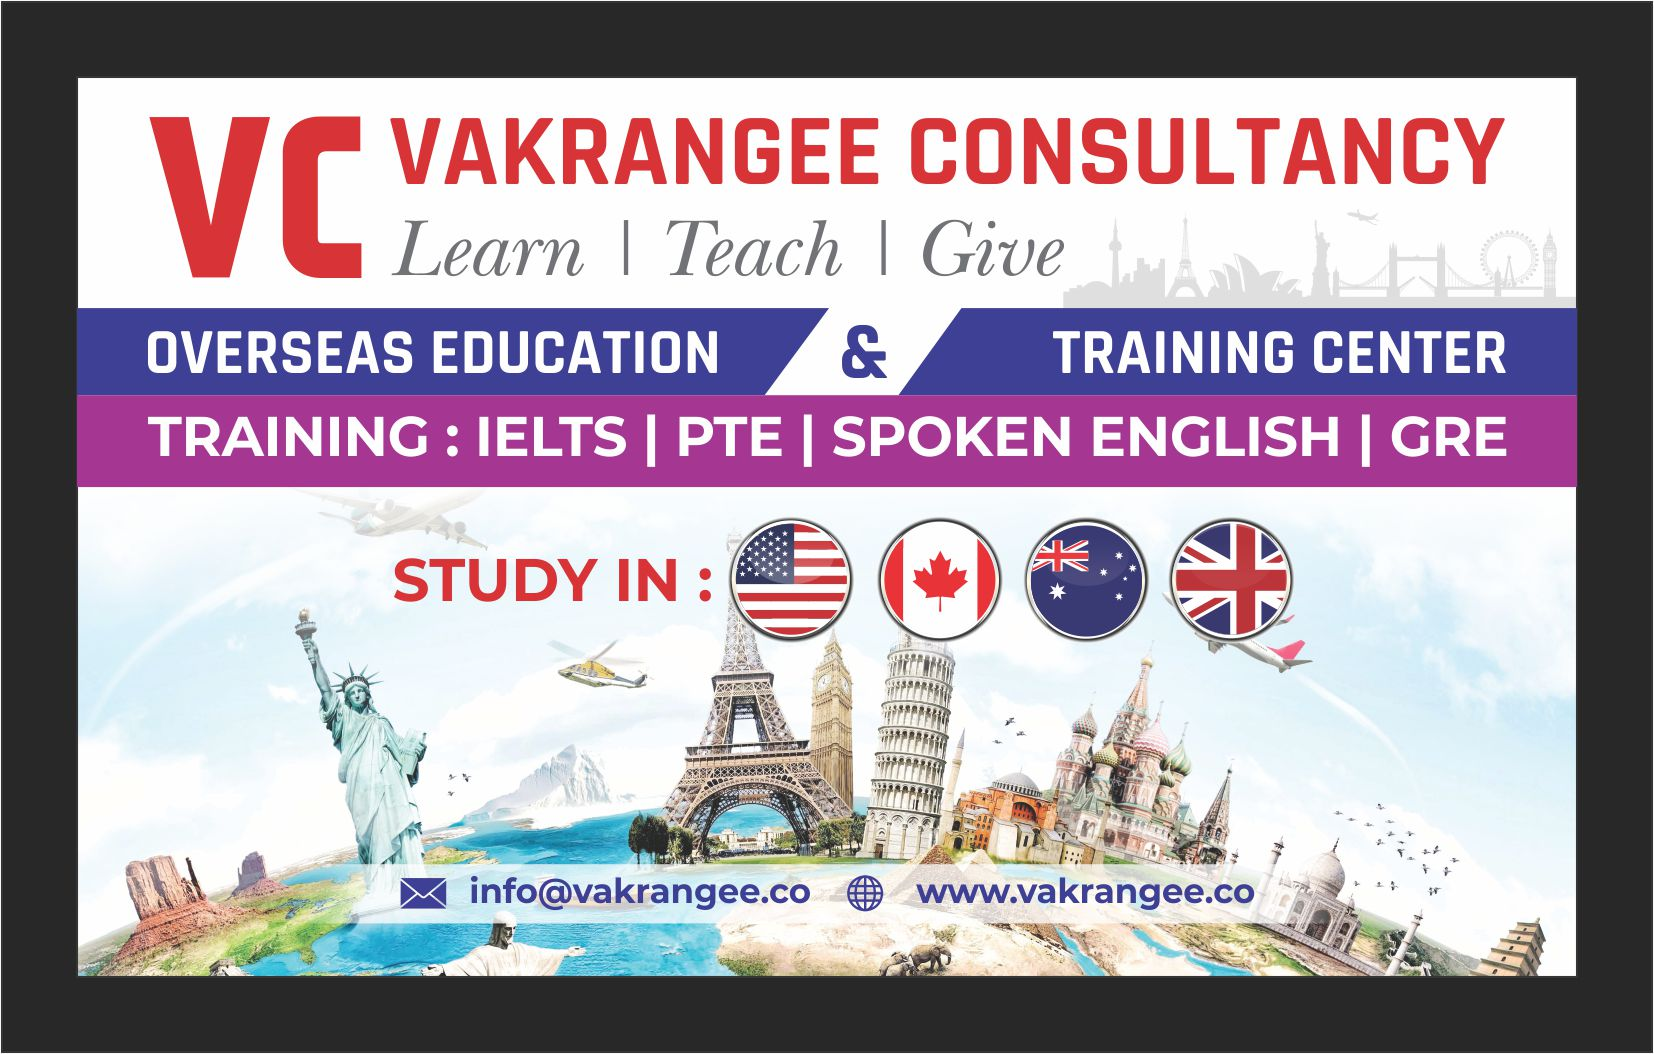 Vakrangee Consultancy in Himayat Nagar, Hyderabad-500029